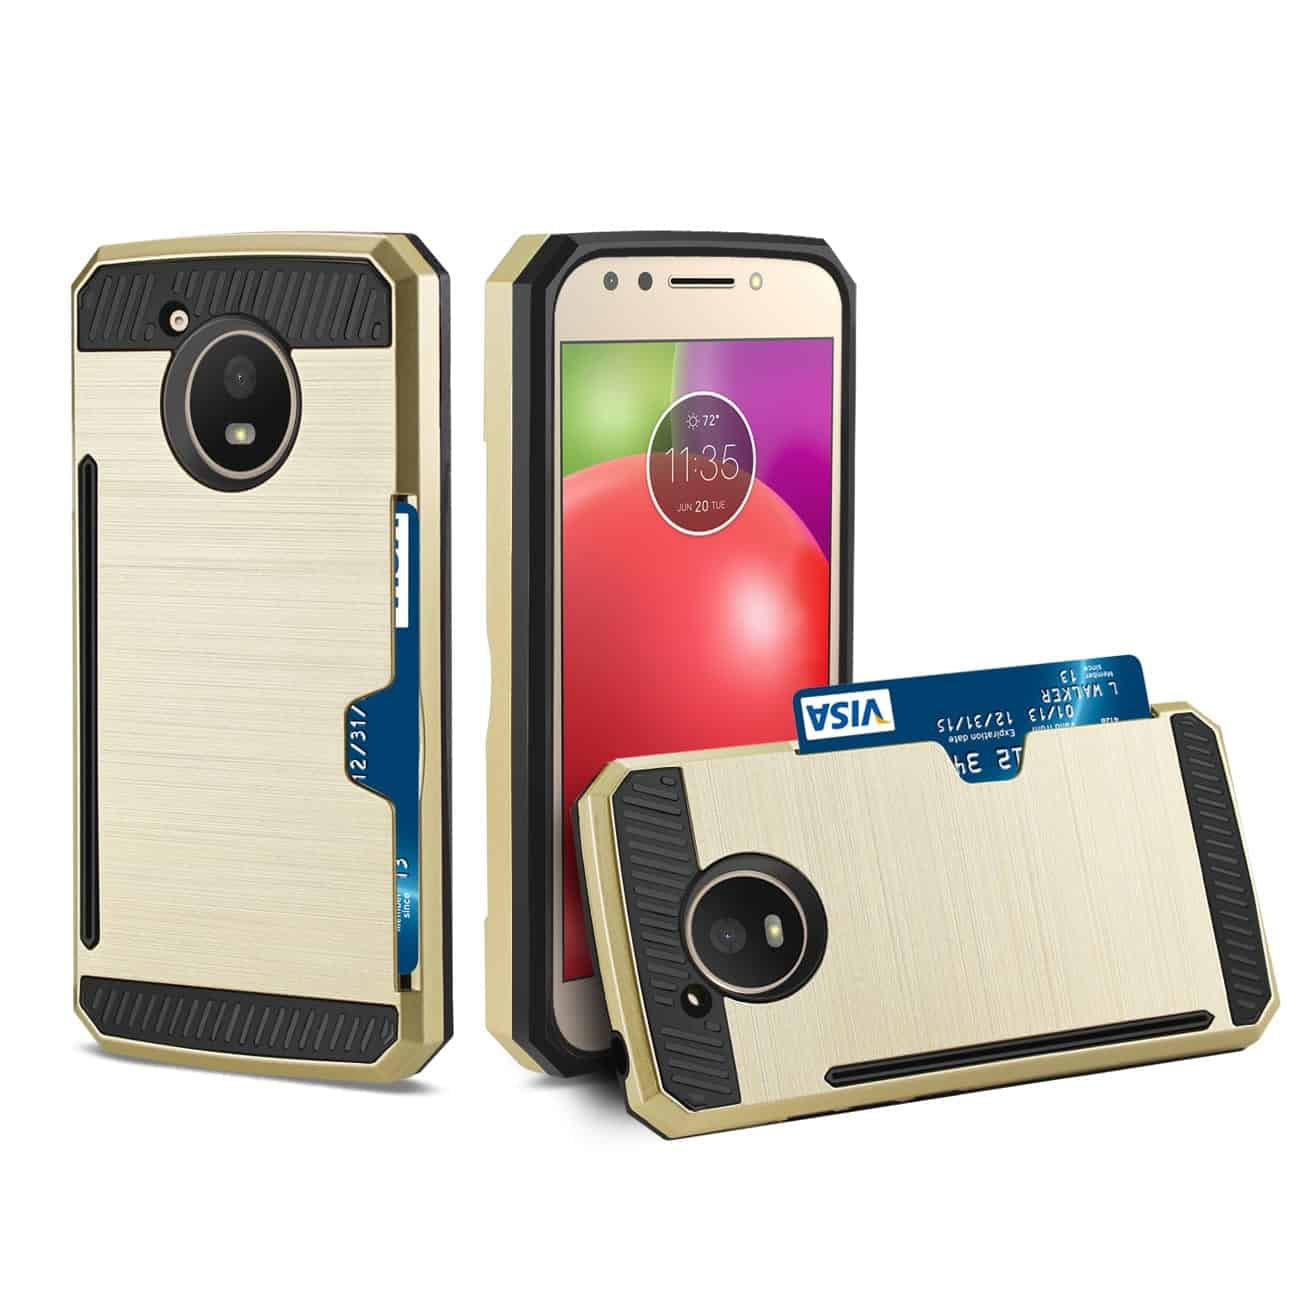 MOTOROLA MOTO E4 ACTIVE SLIM ARMOR HYBRID CASE WITH CARD HOLDER IN GOLD